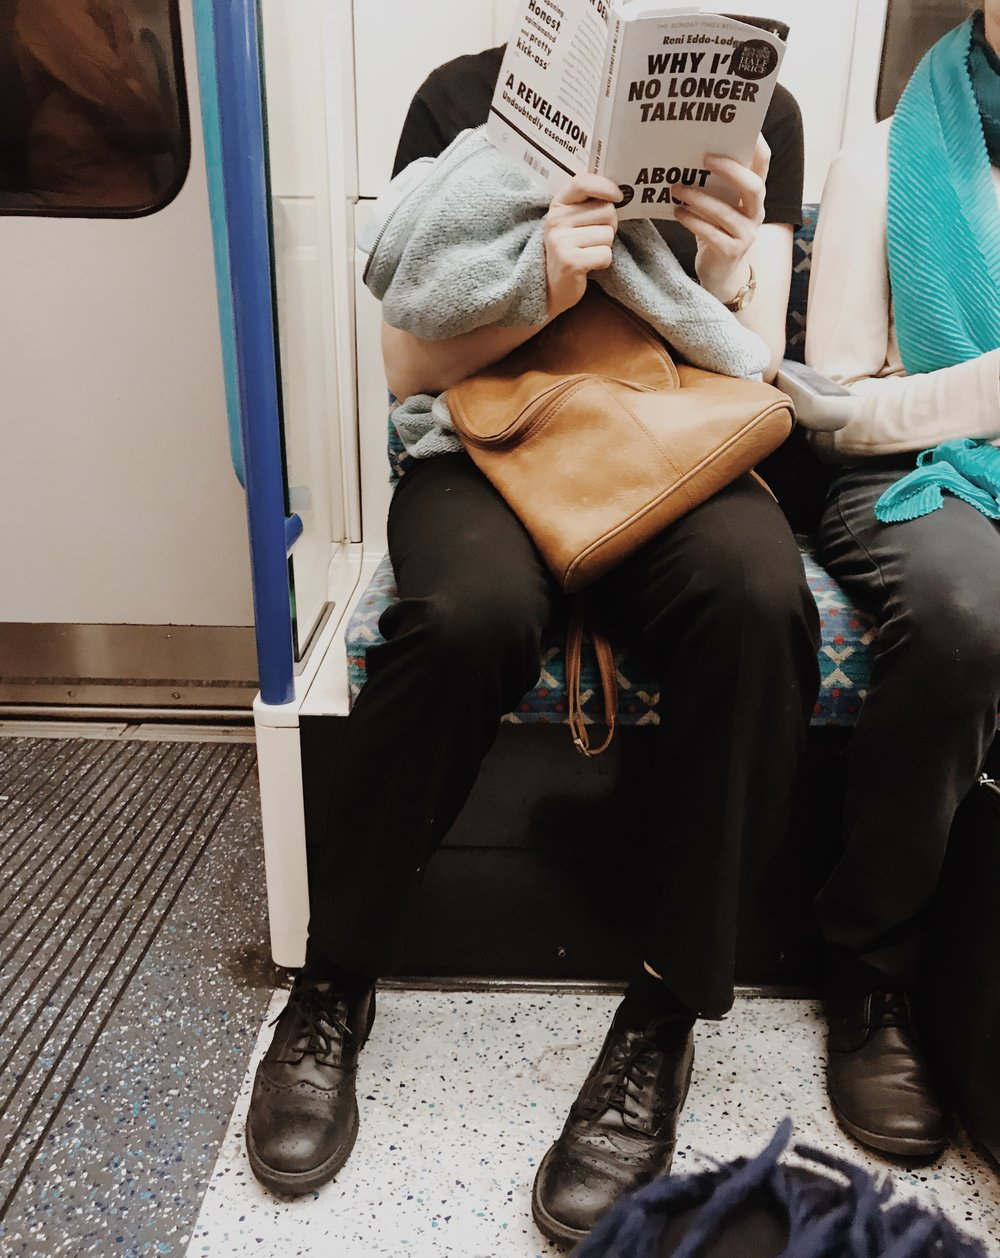 Taken on the tube, last week.